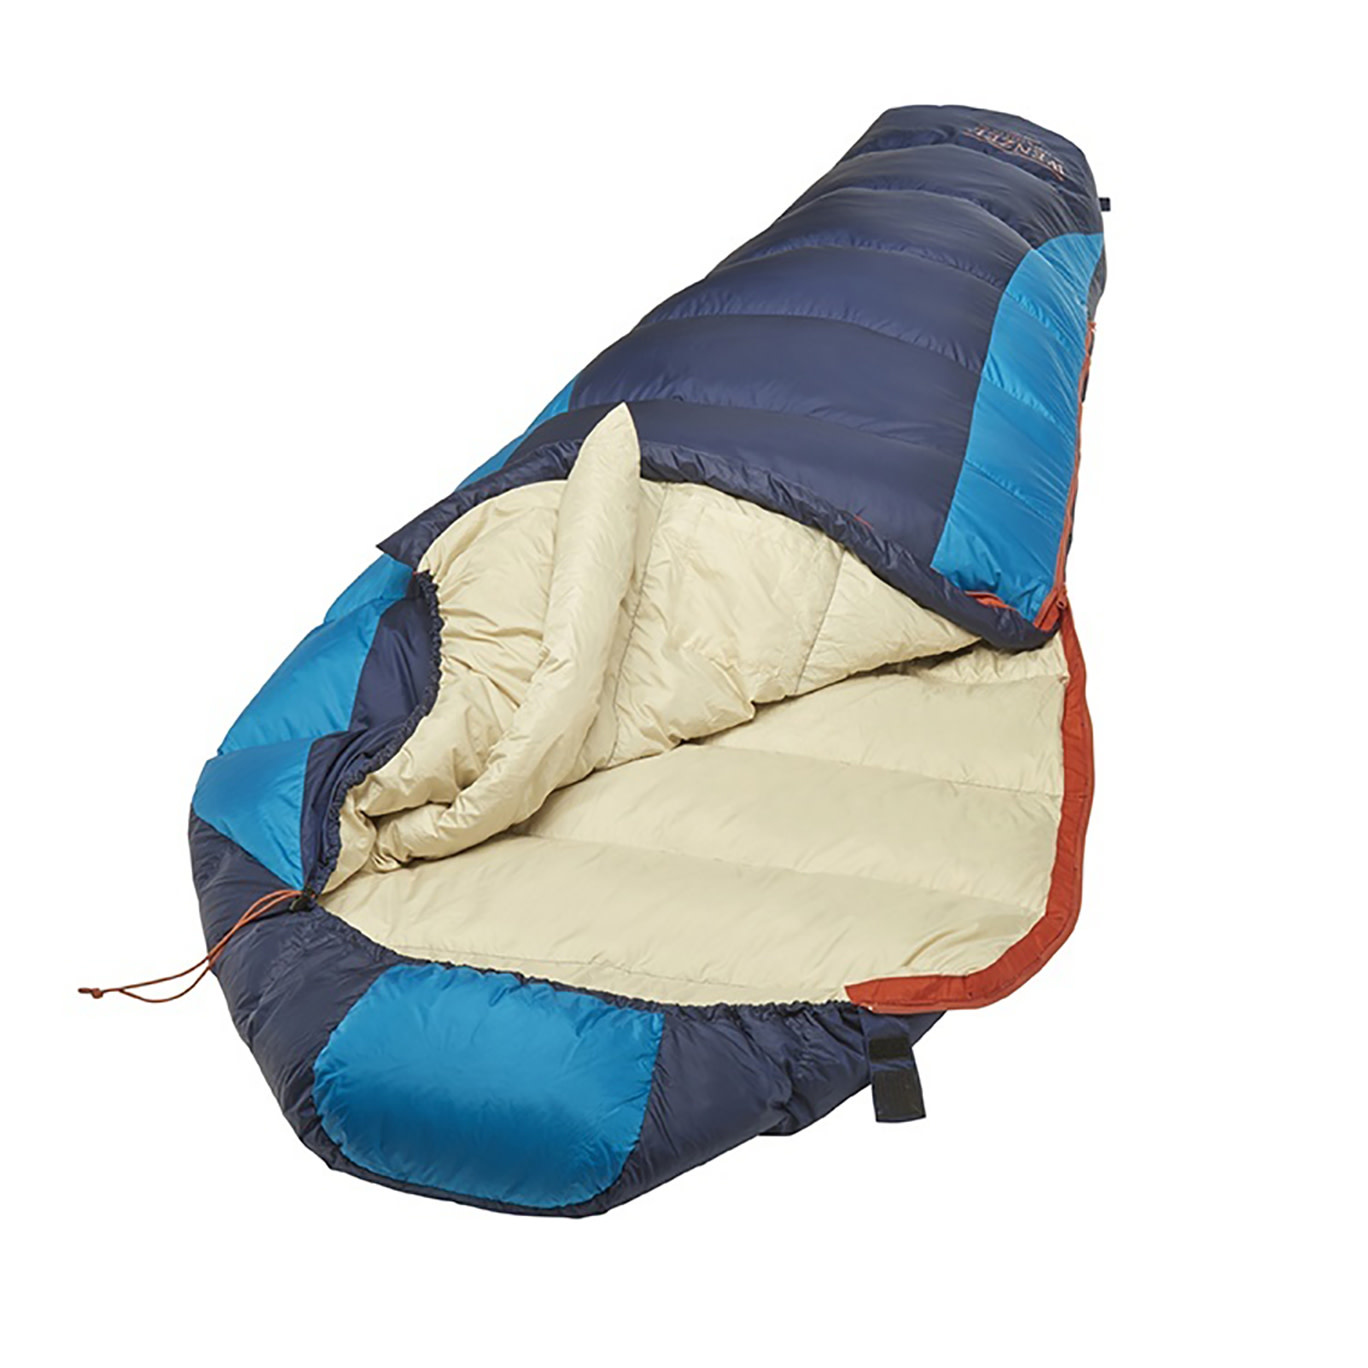 Liberty Mountain Jailbird Down Sleeping Bag 30 - 40 degree, Mummy